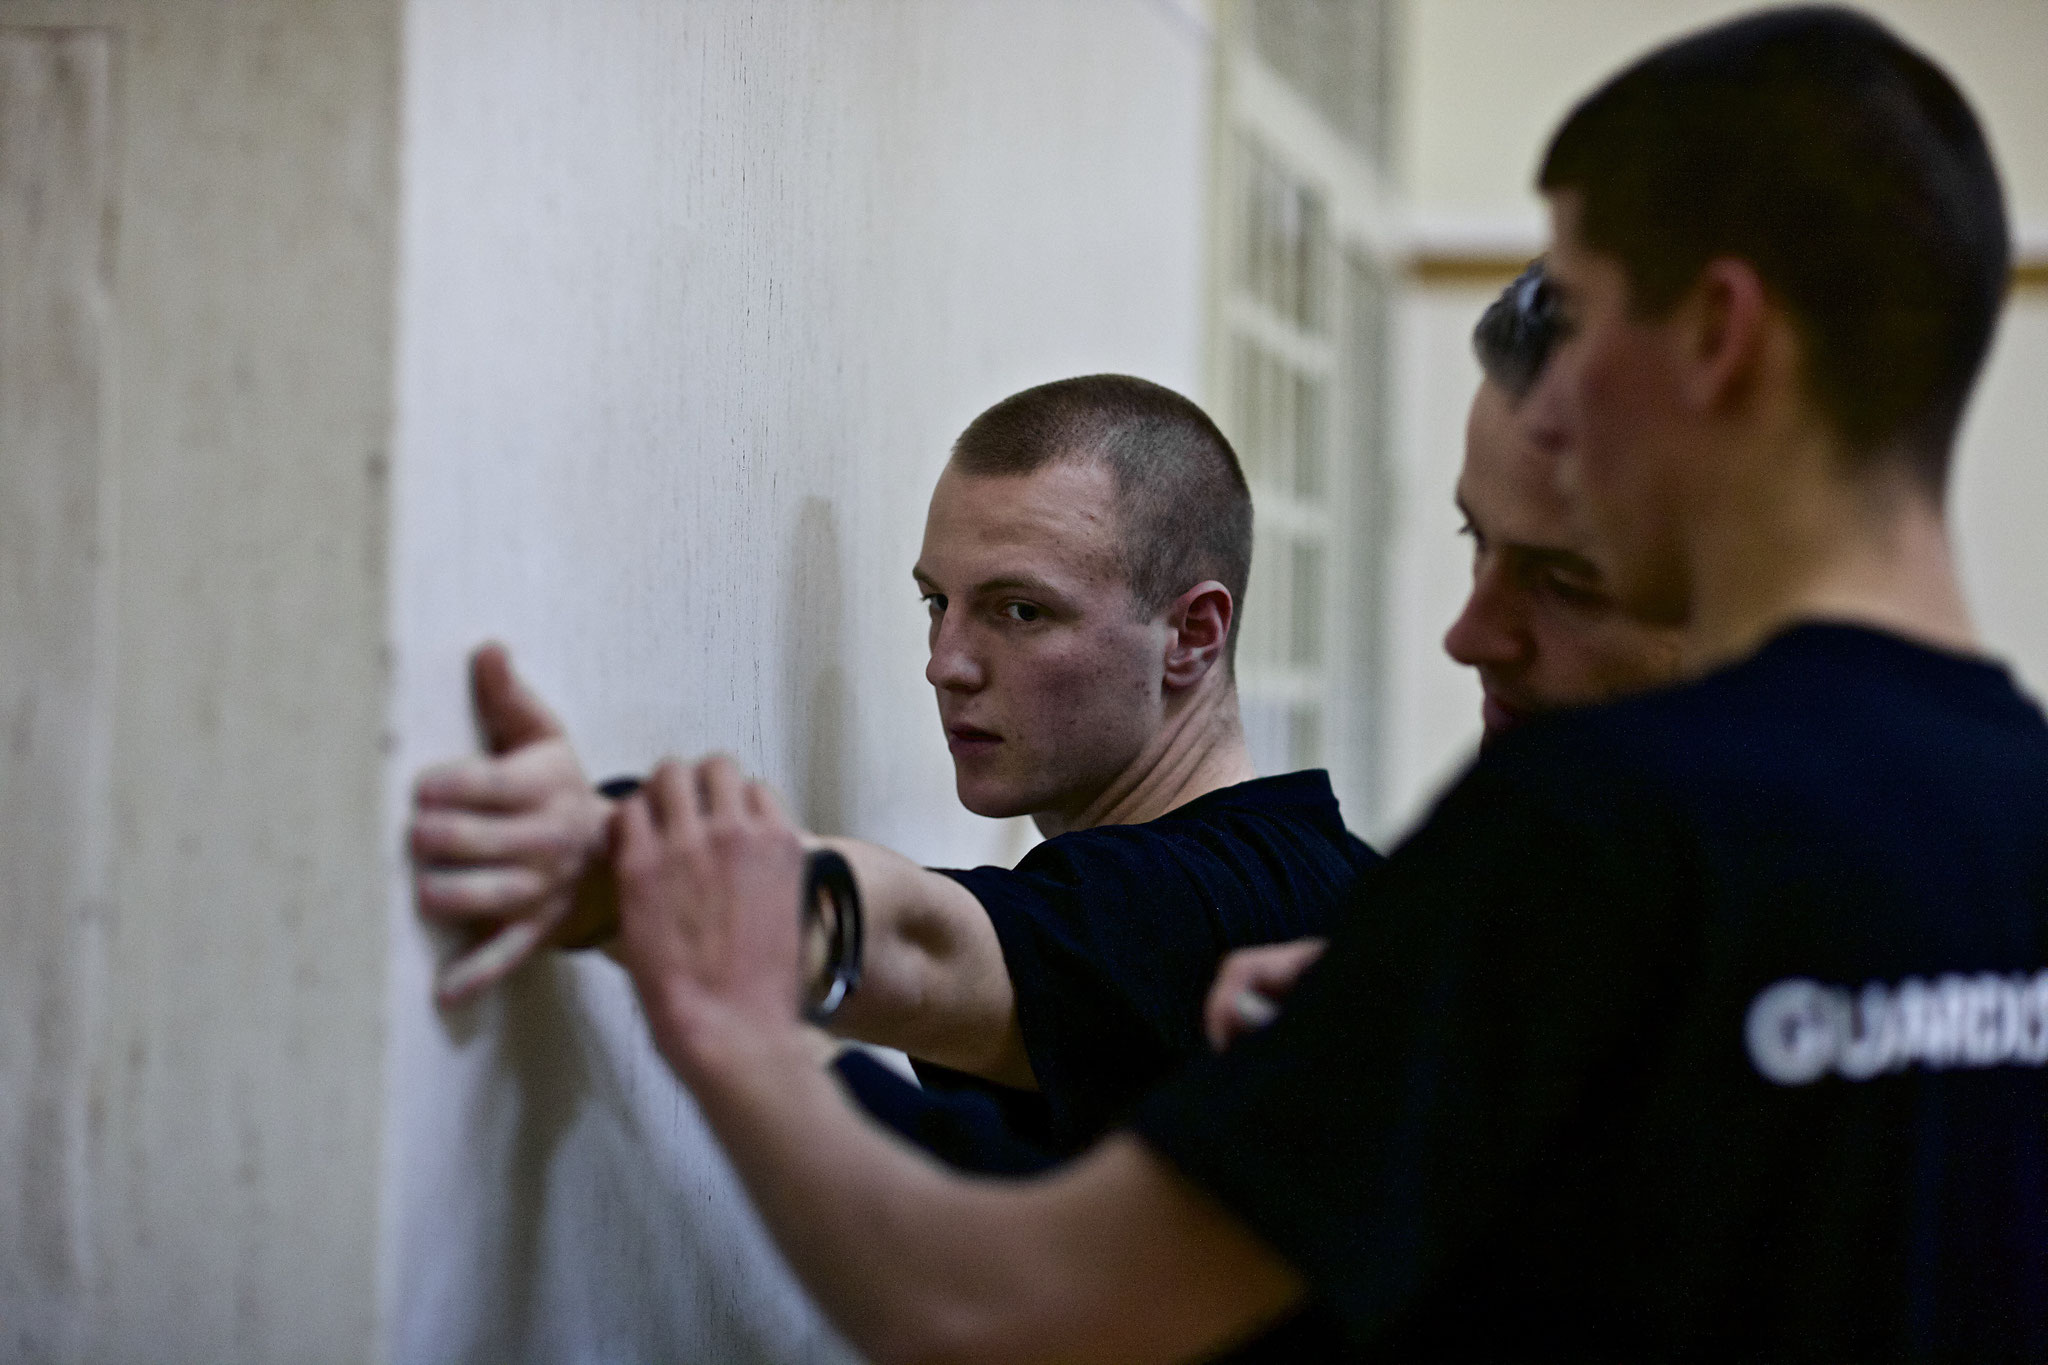 Getting trained in detaining methods.